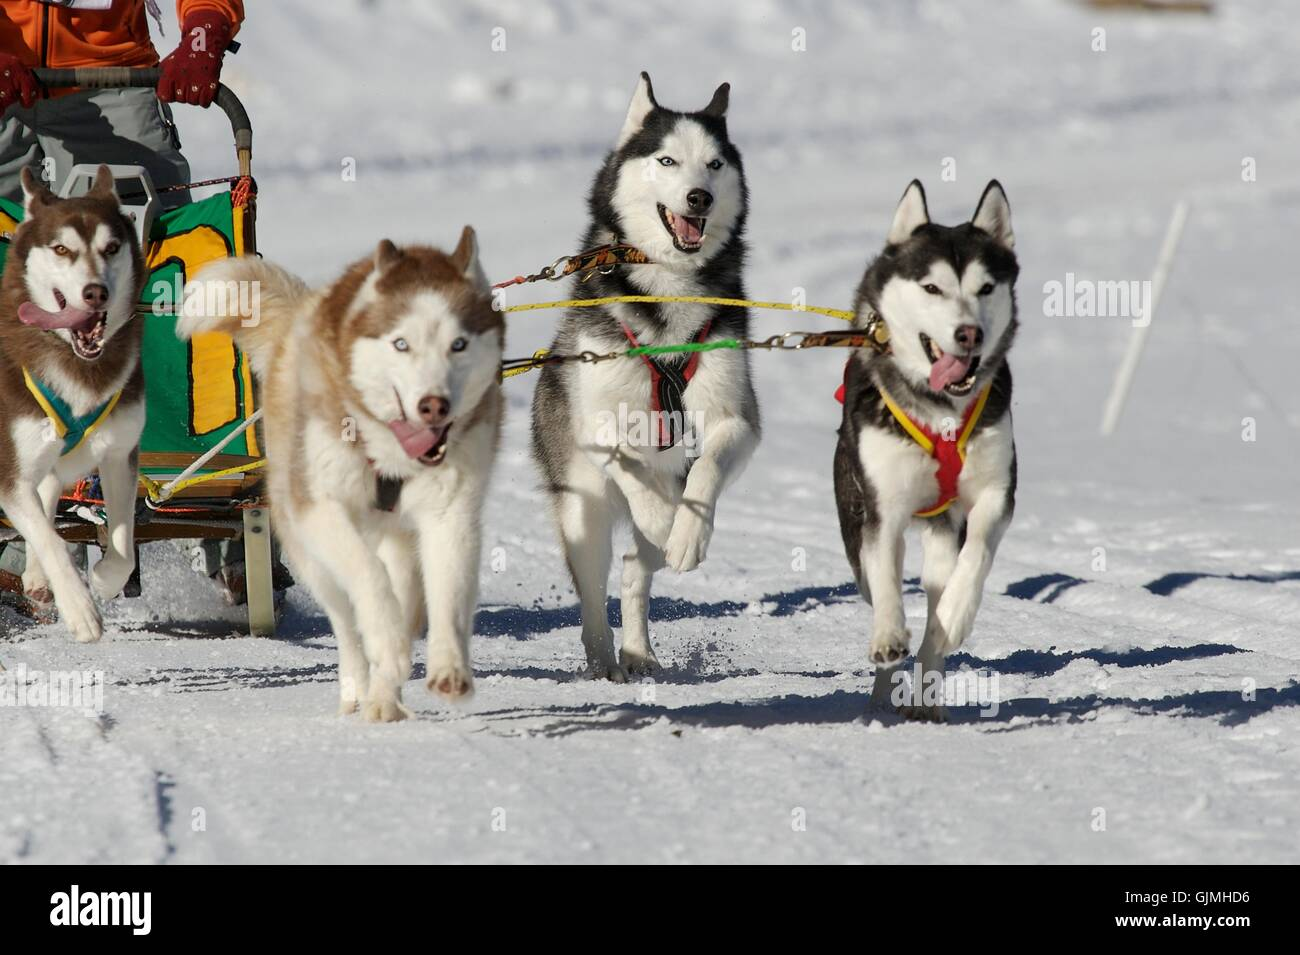 winter dogs sledge - Stock Image